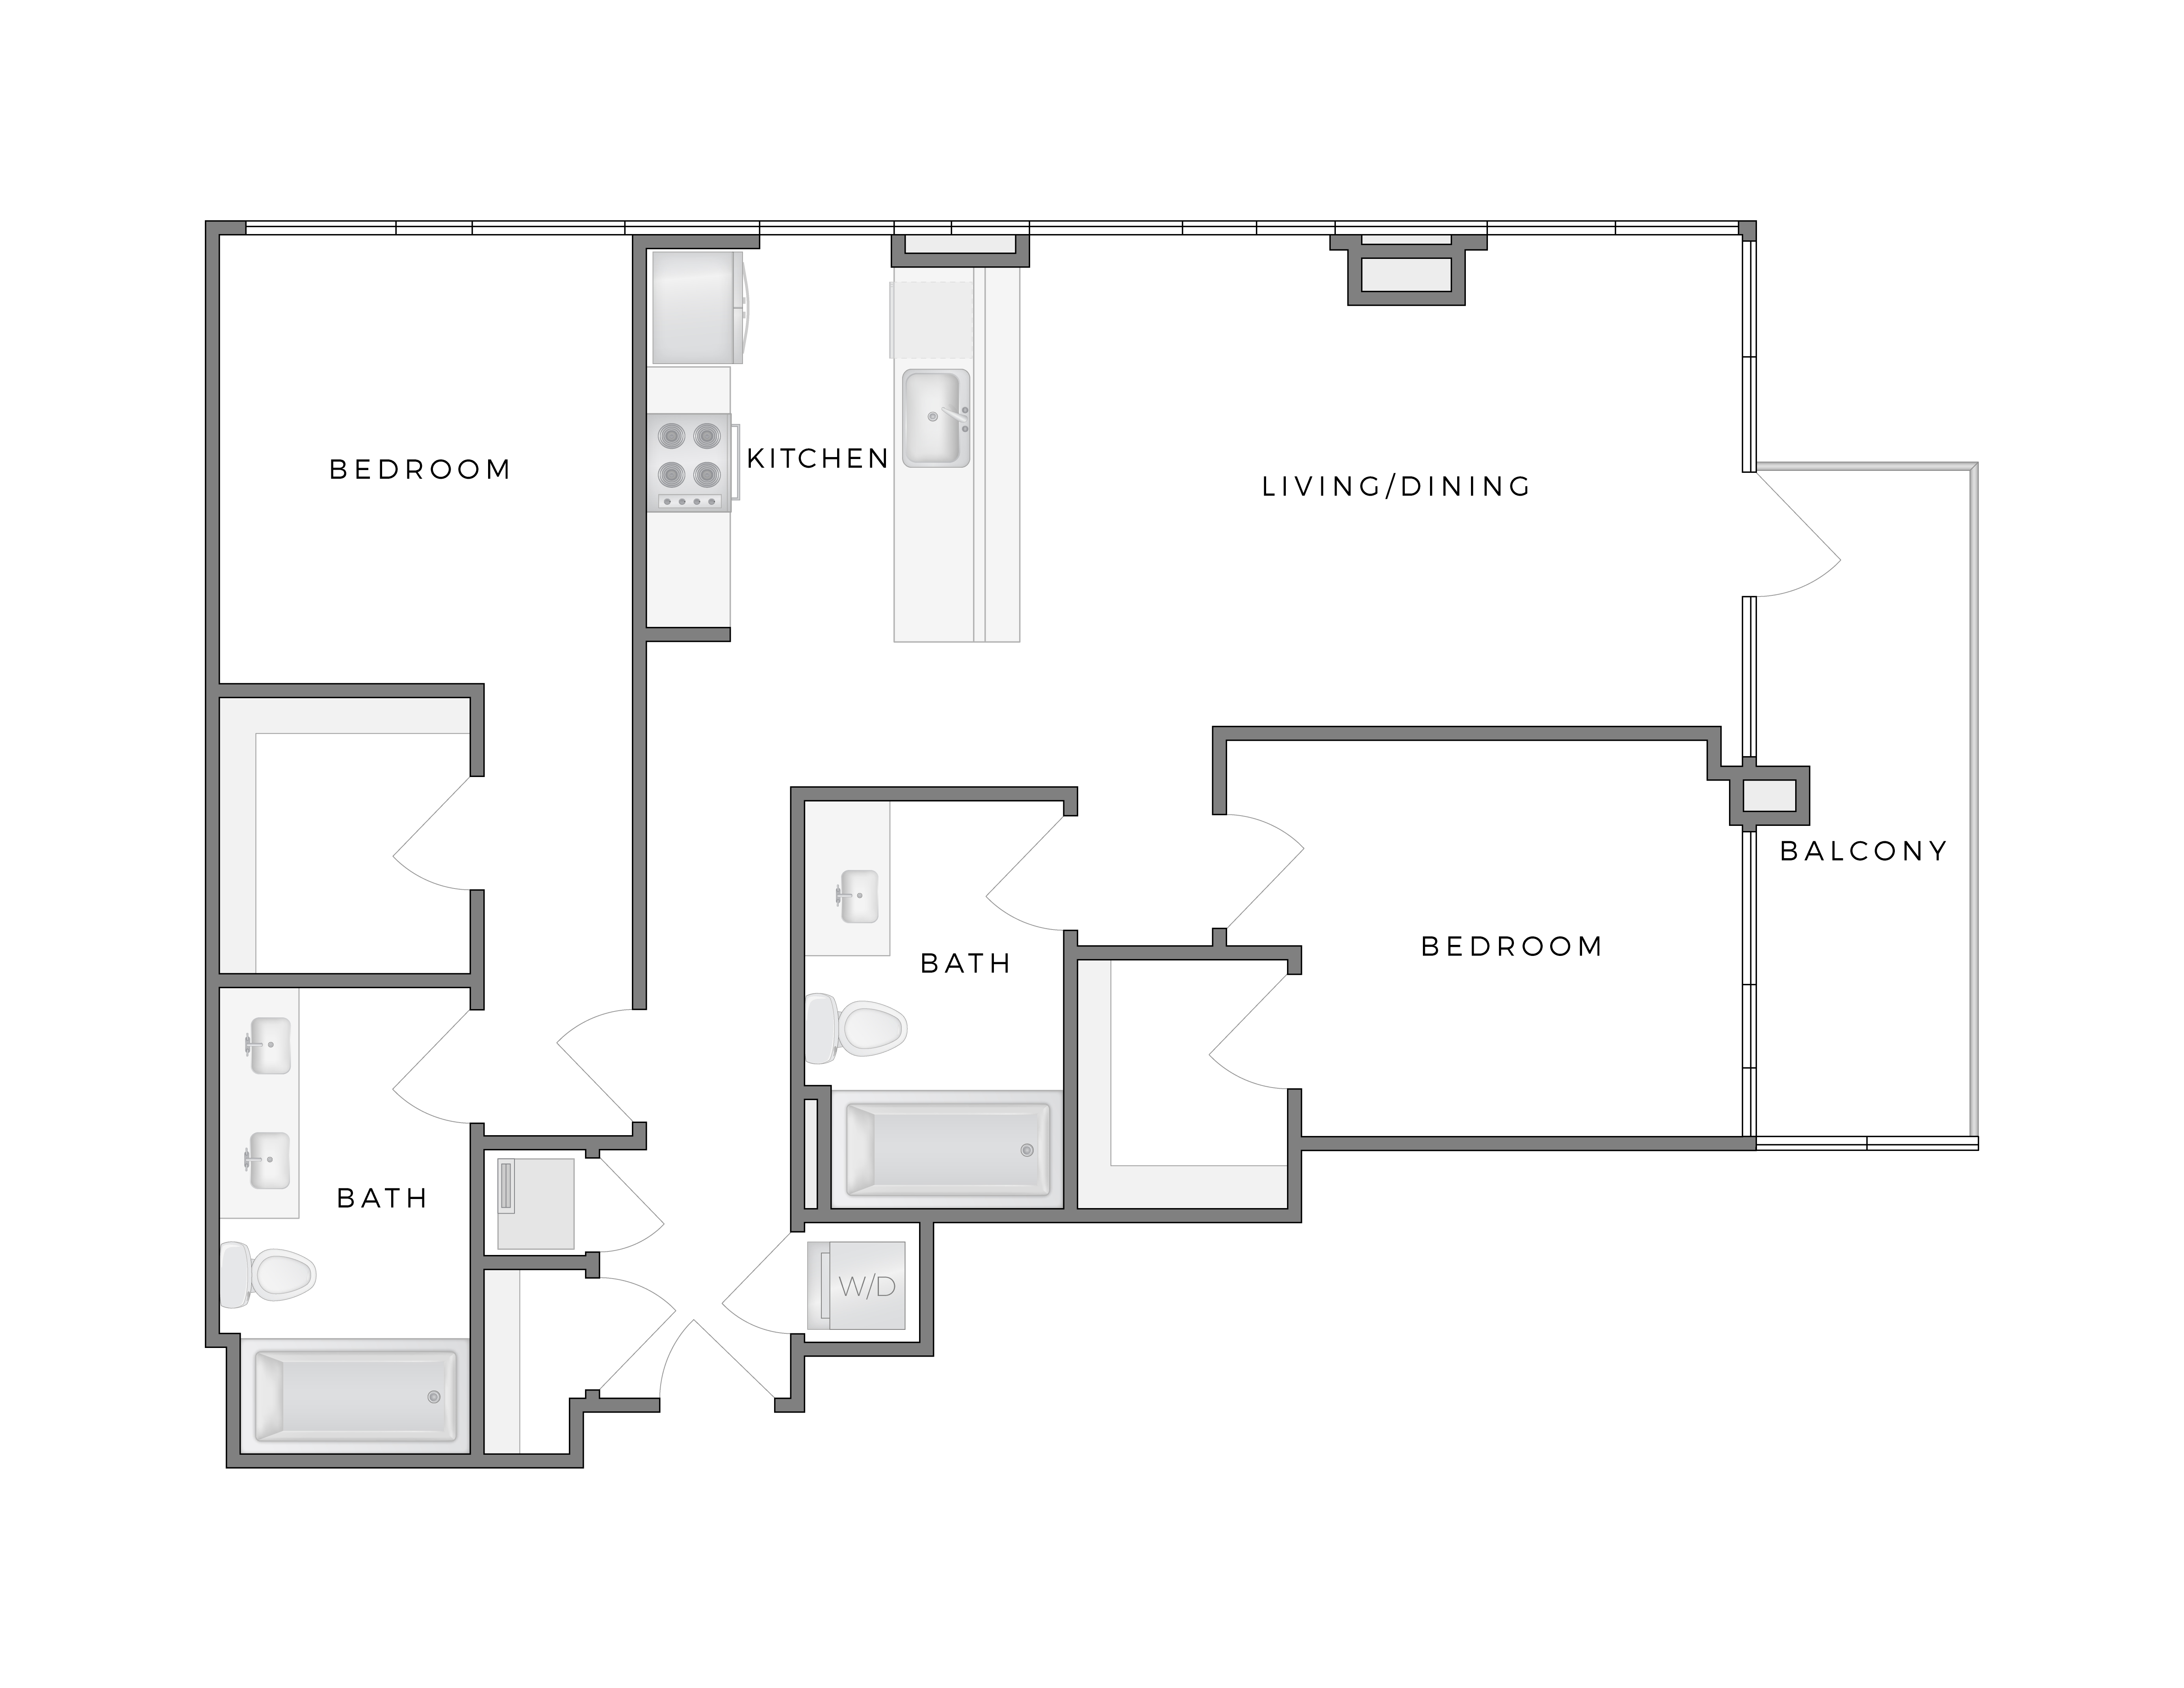 Atelier Hopper 4 apartment floorplan diagram with two bedrooms, two bathrooms, kitchen, living dining area and balcony